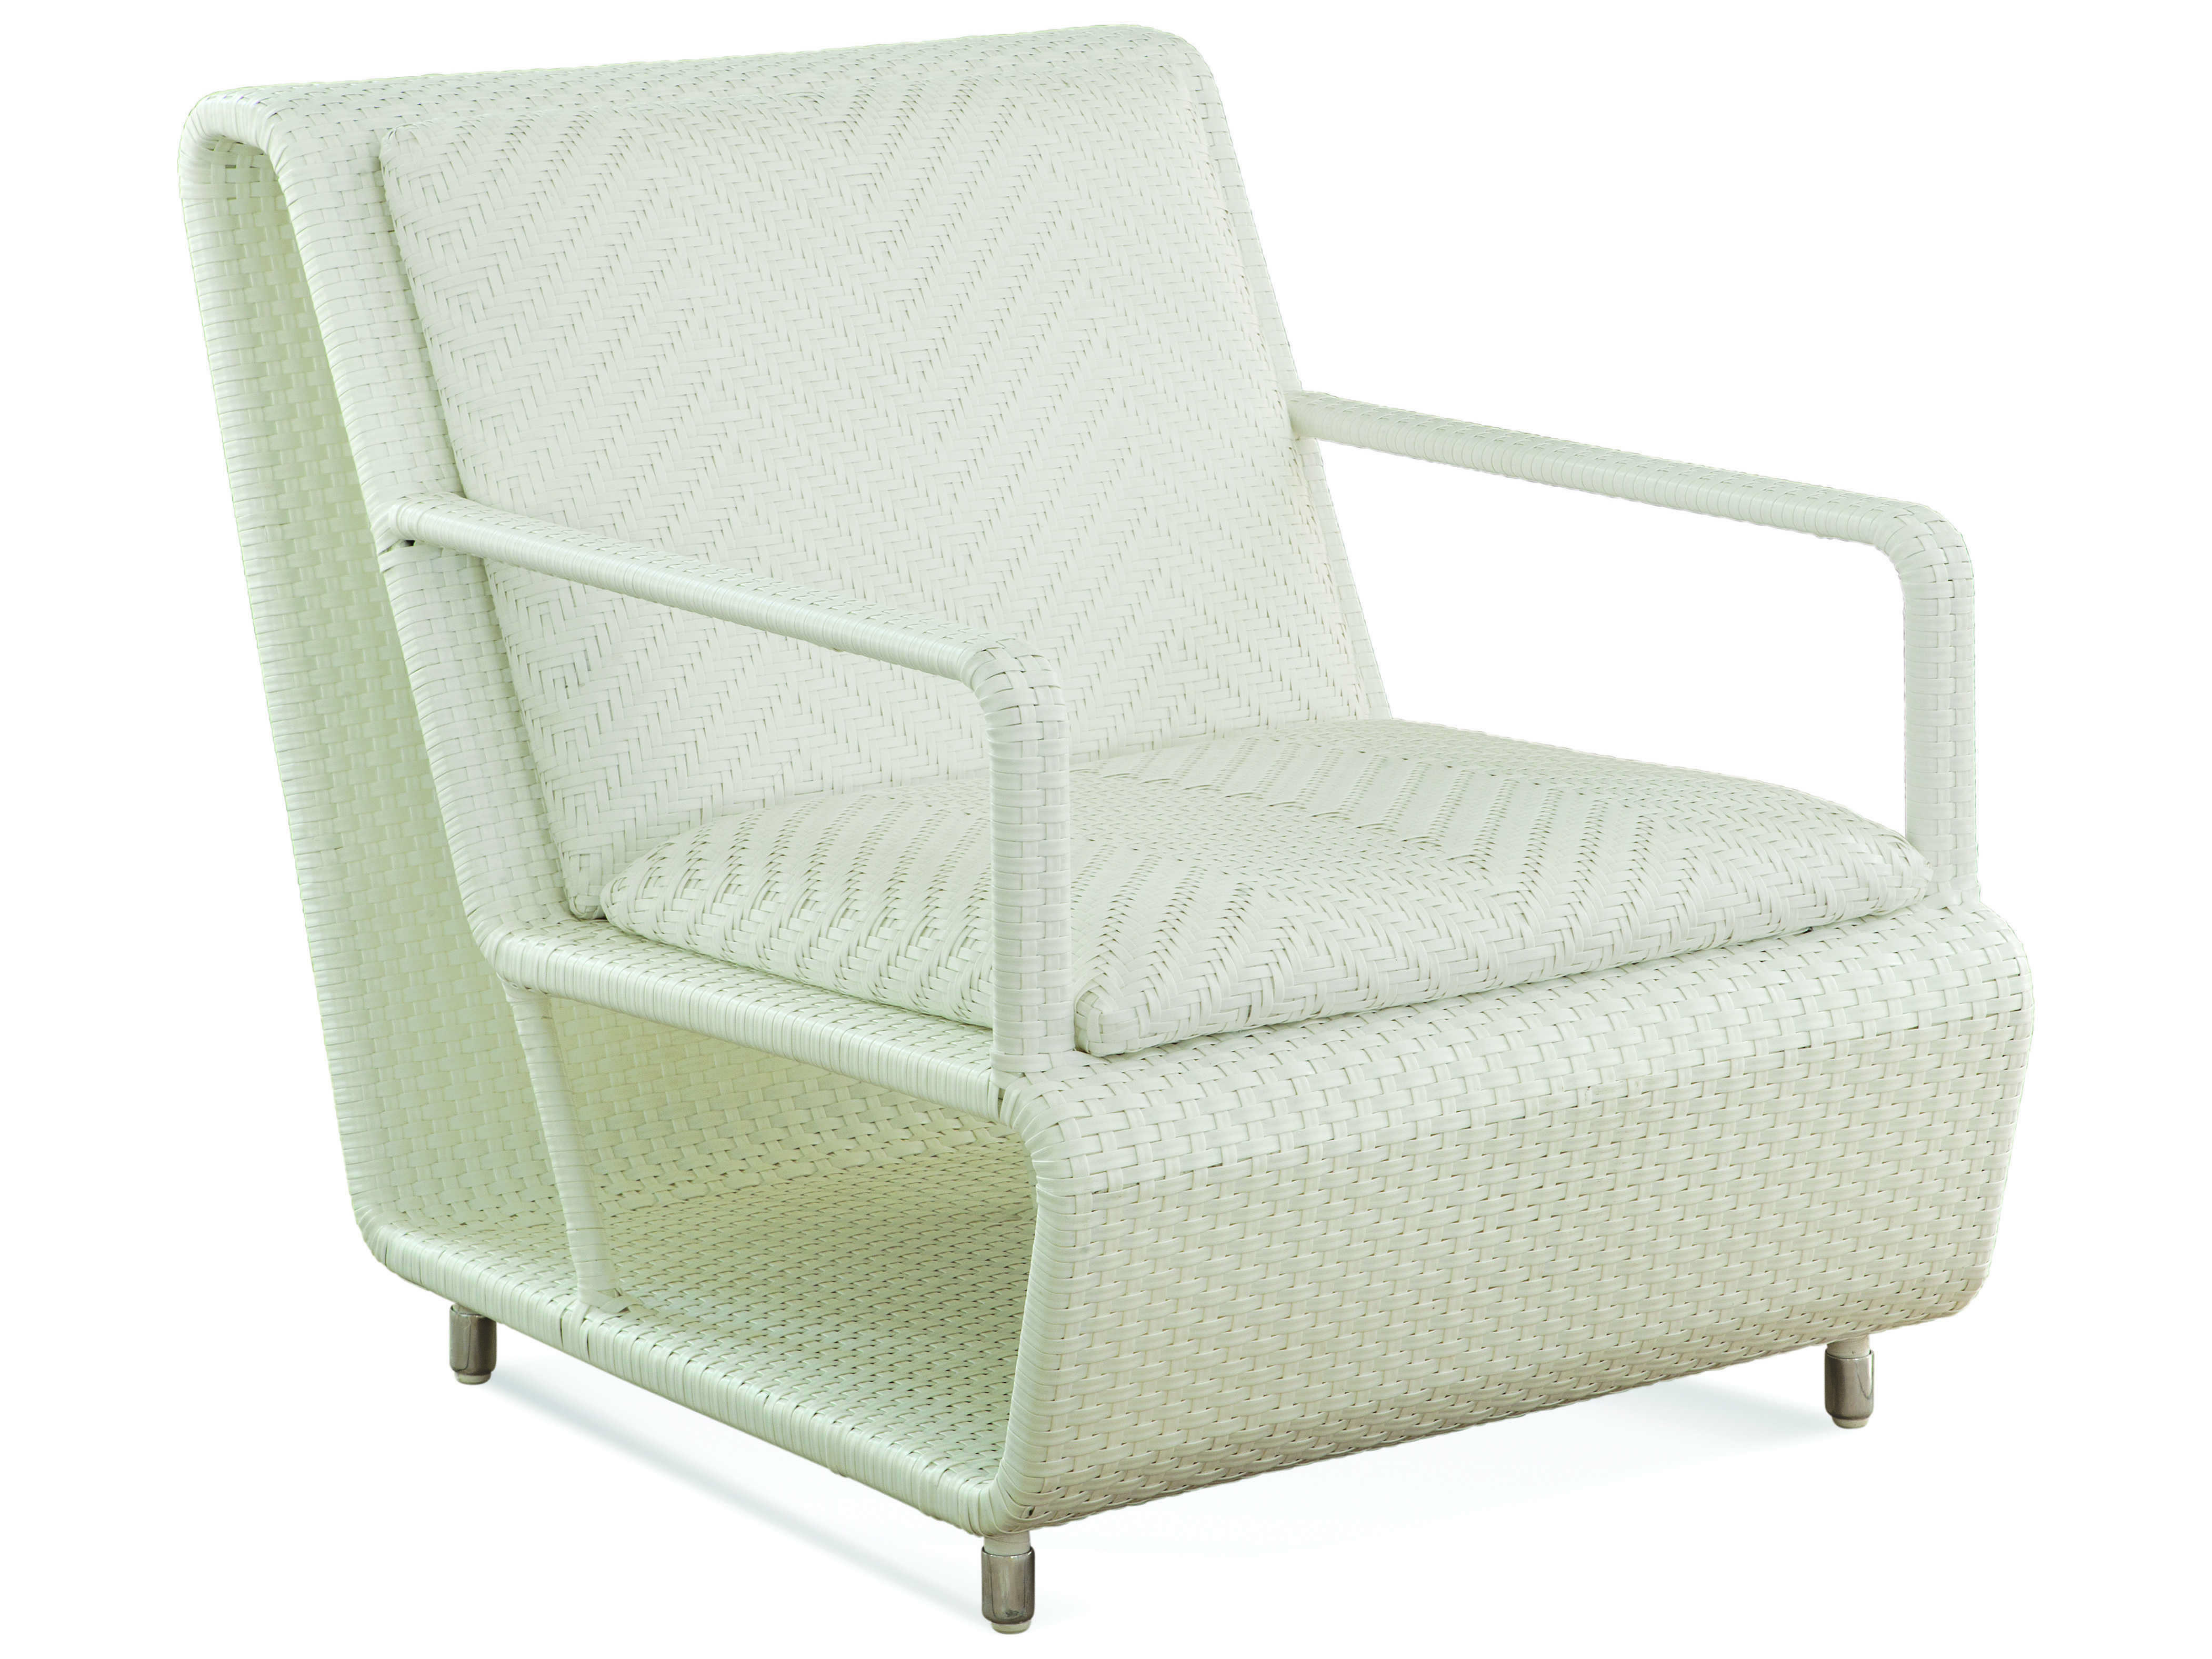 Surprising Braxton Culler Outdoor Montauk Frost White Wicker Cushion Lounge Chair Andrewgaddart Wooden Chair Designs For Living Room Andrewgaddartcom